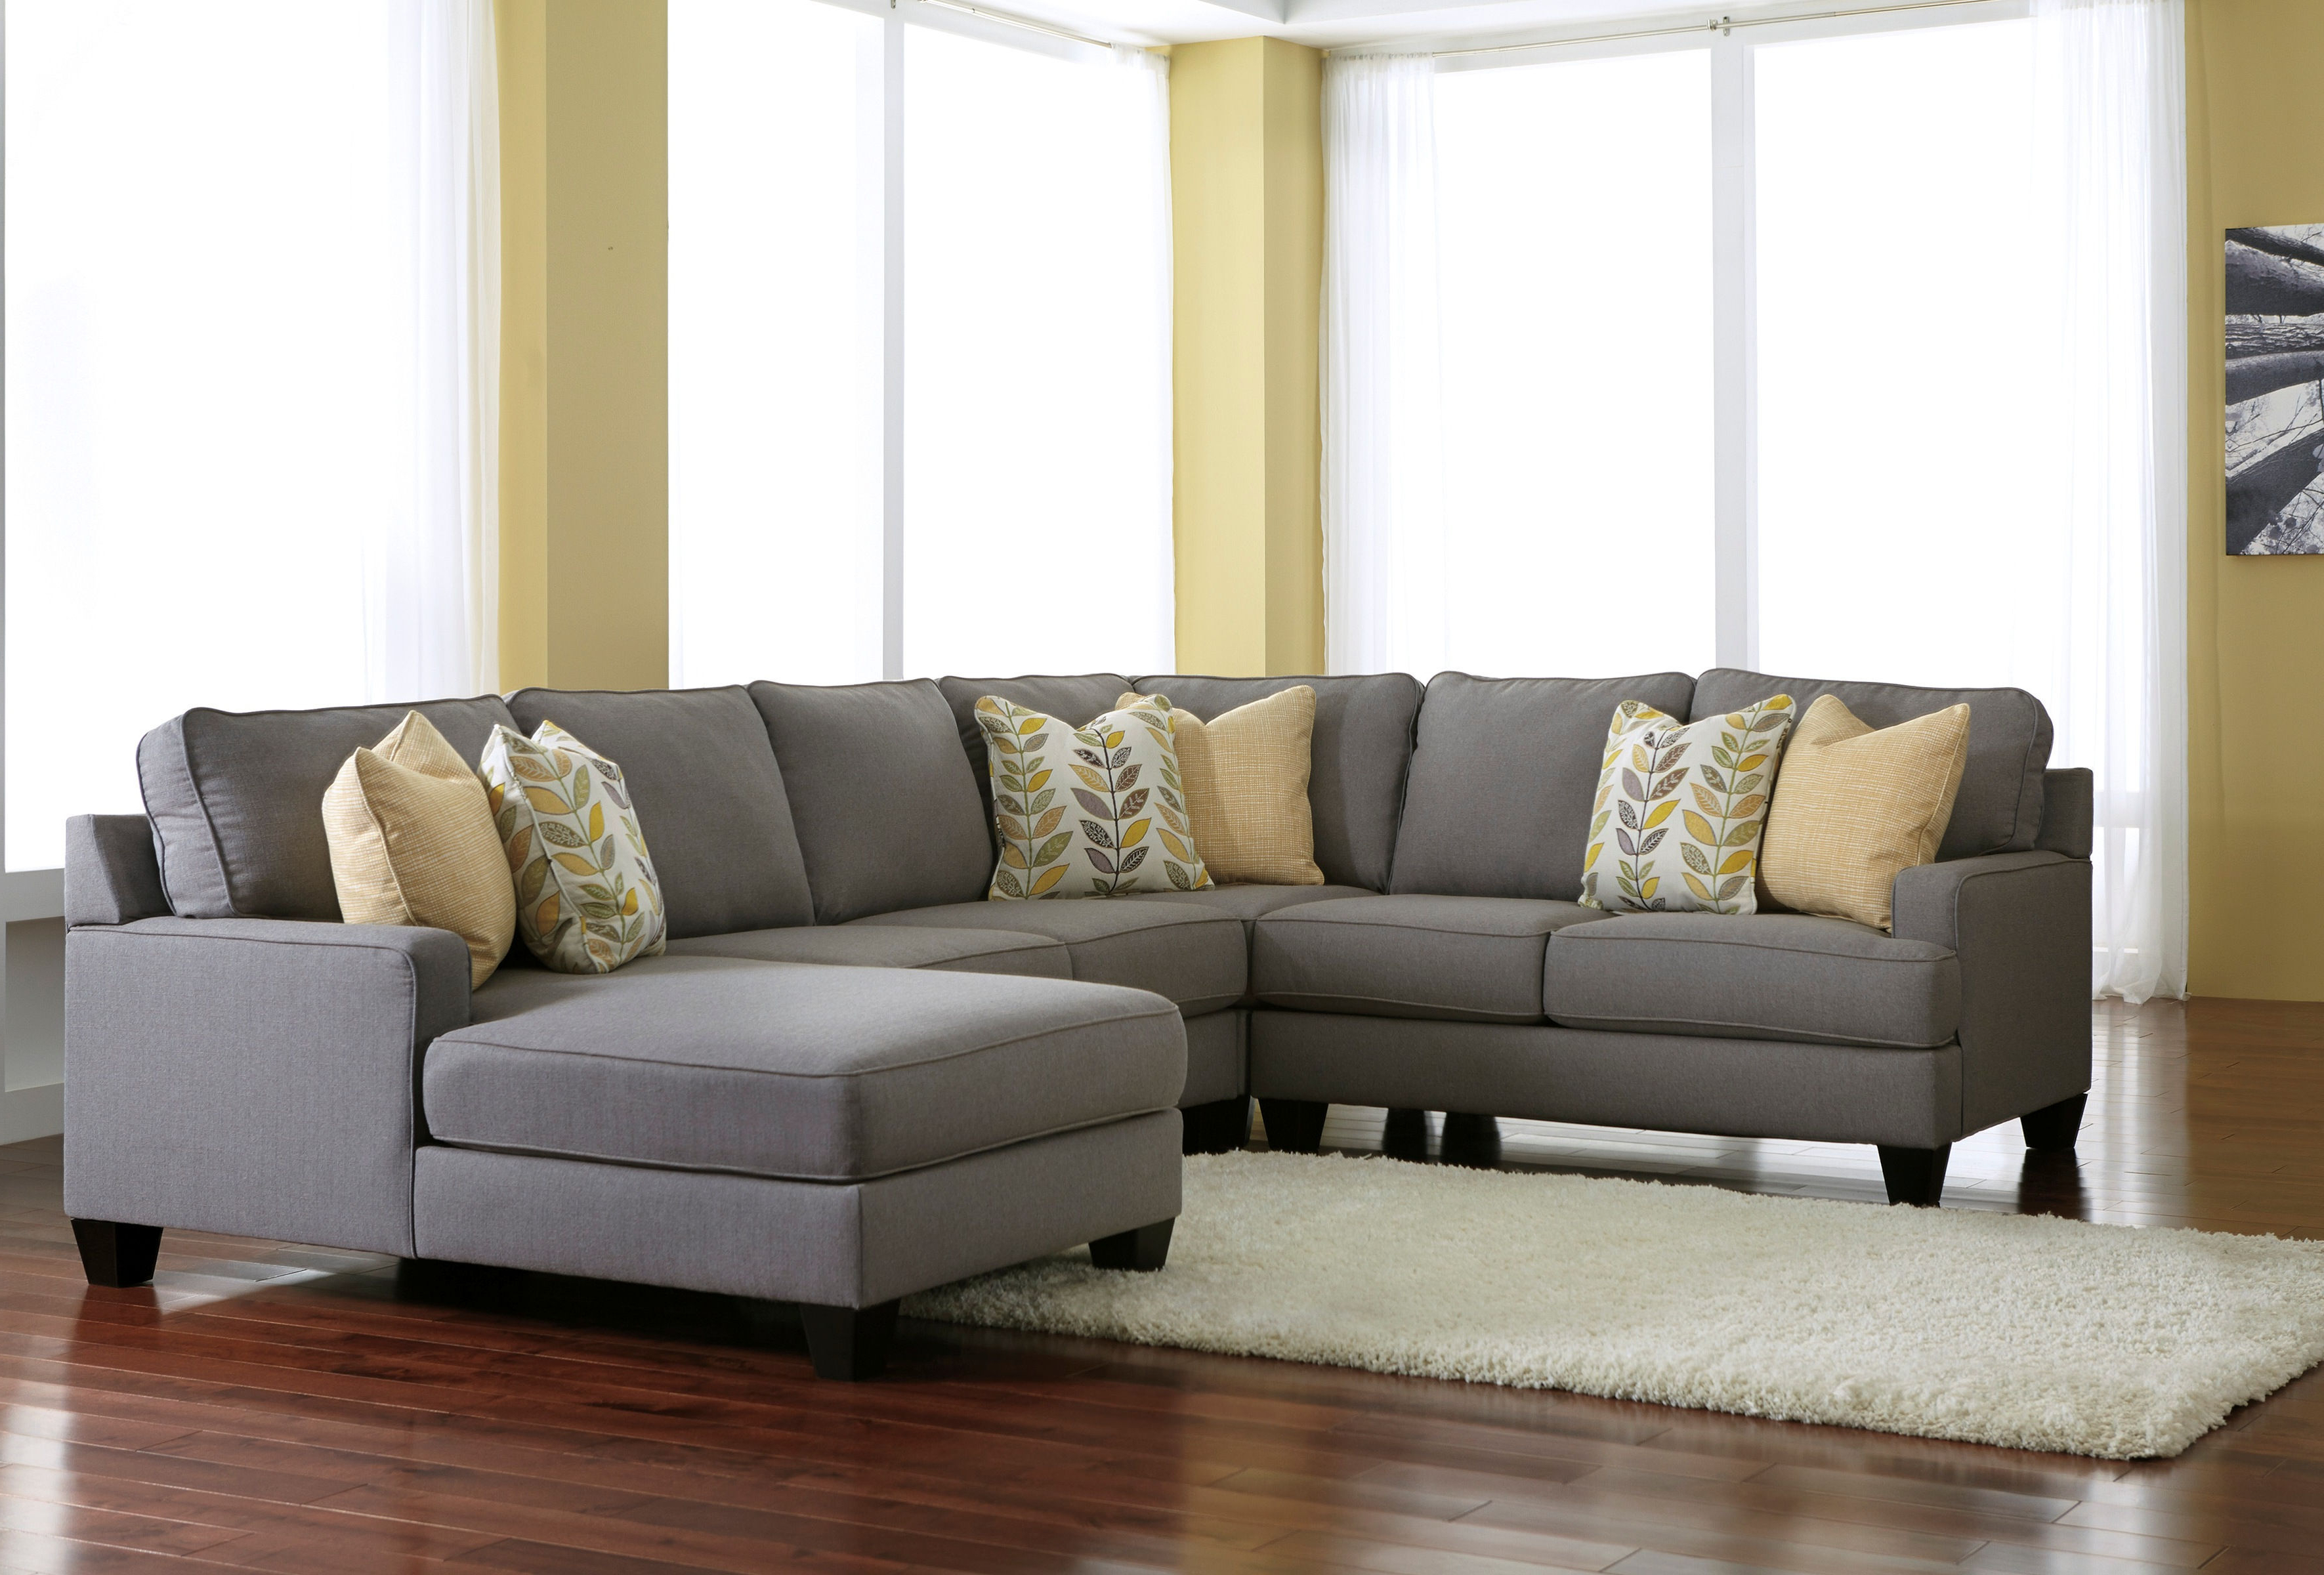 Amazing Signature Designashley Furniture Living Room Sectional Within Trendy Benton 4 Piece Sectionals (Gallery 8 of 20)